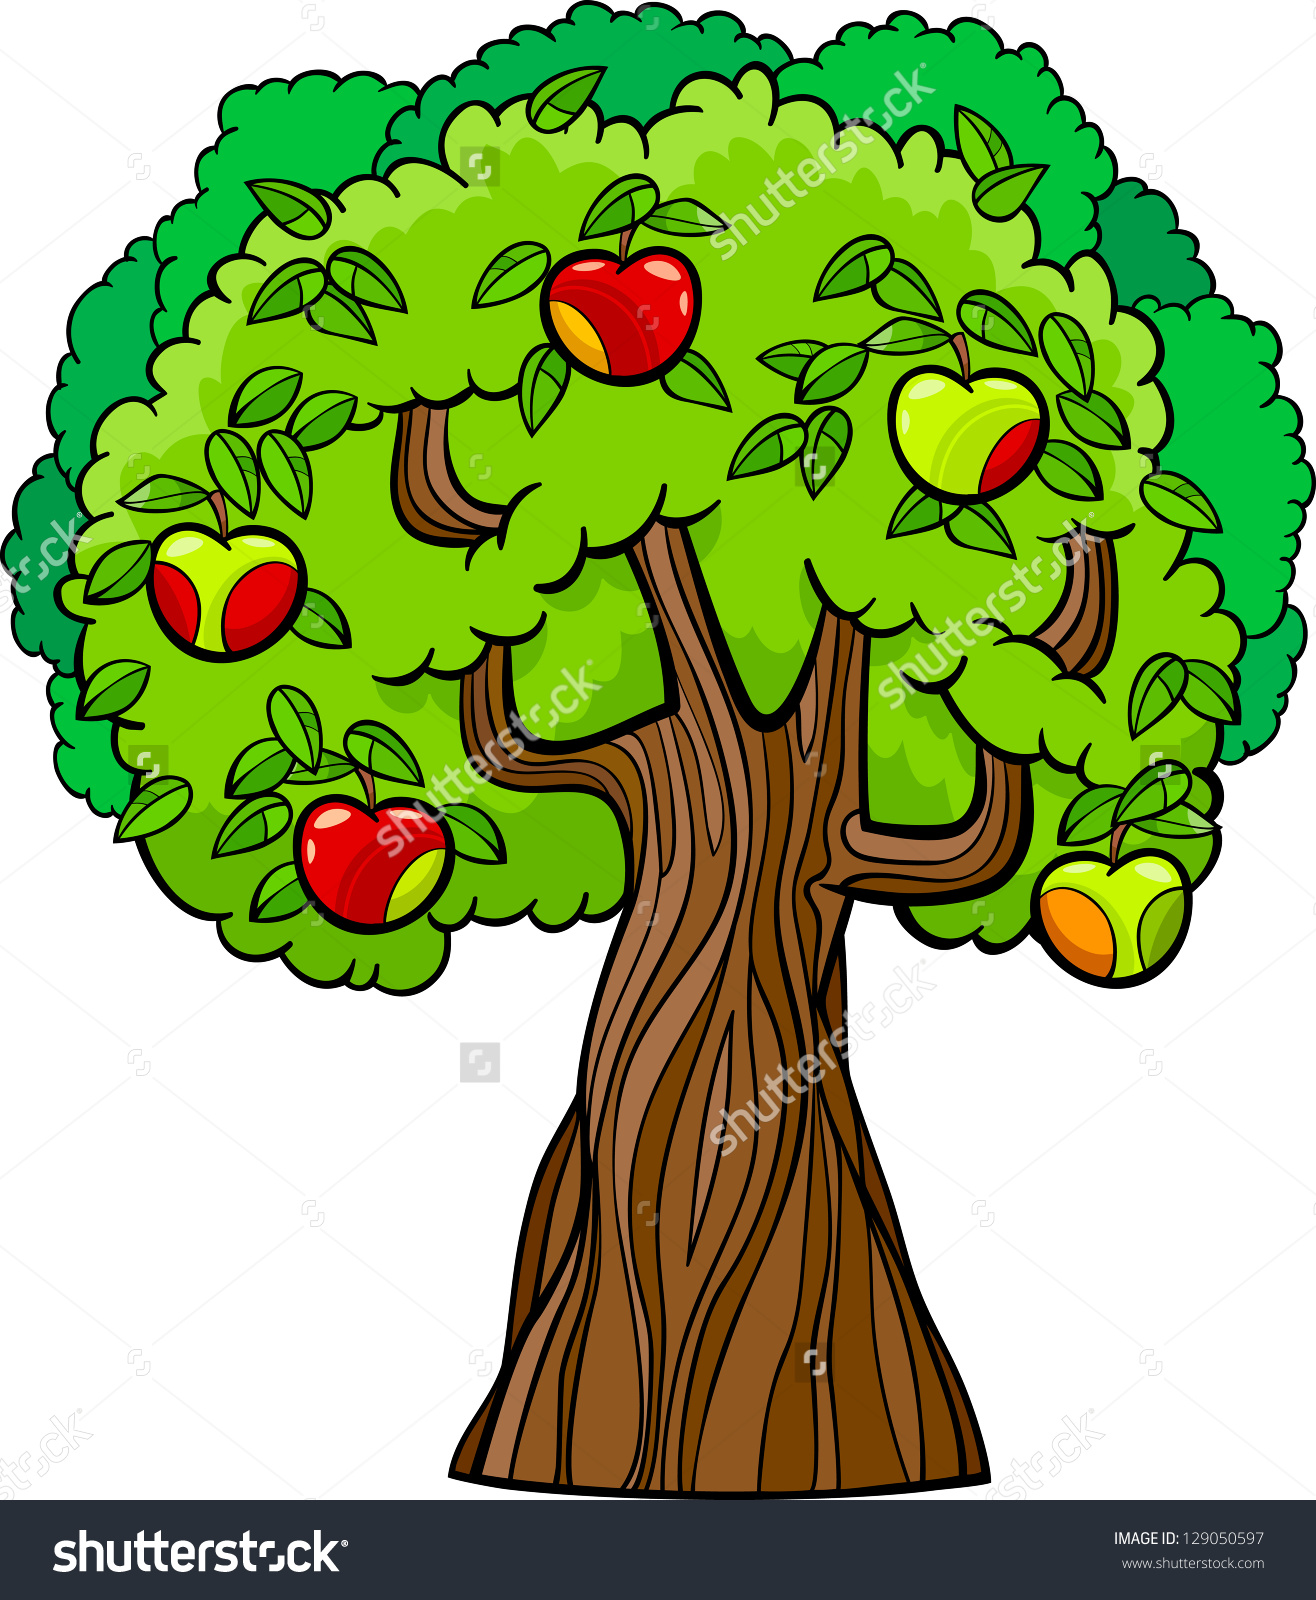 Knowledge clipart cartoon And Clipart tree Tree apples